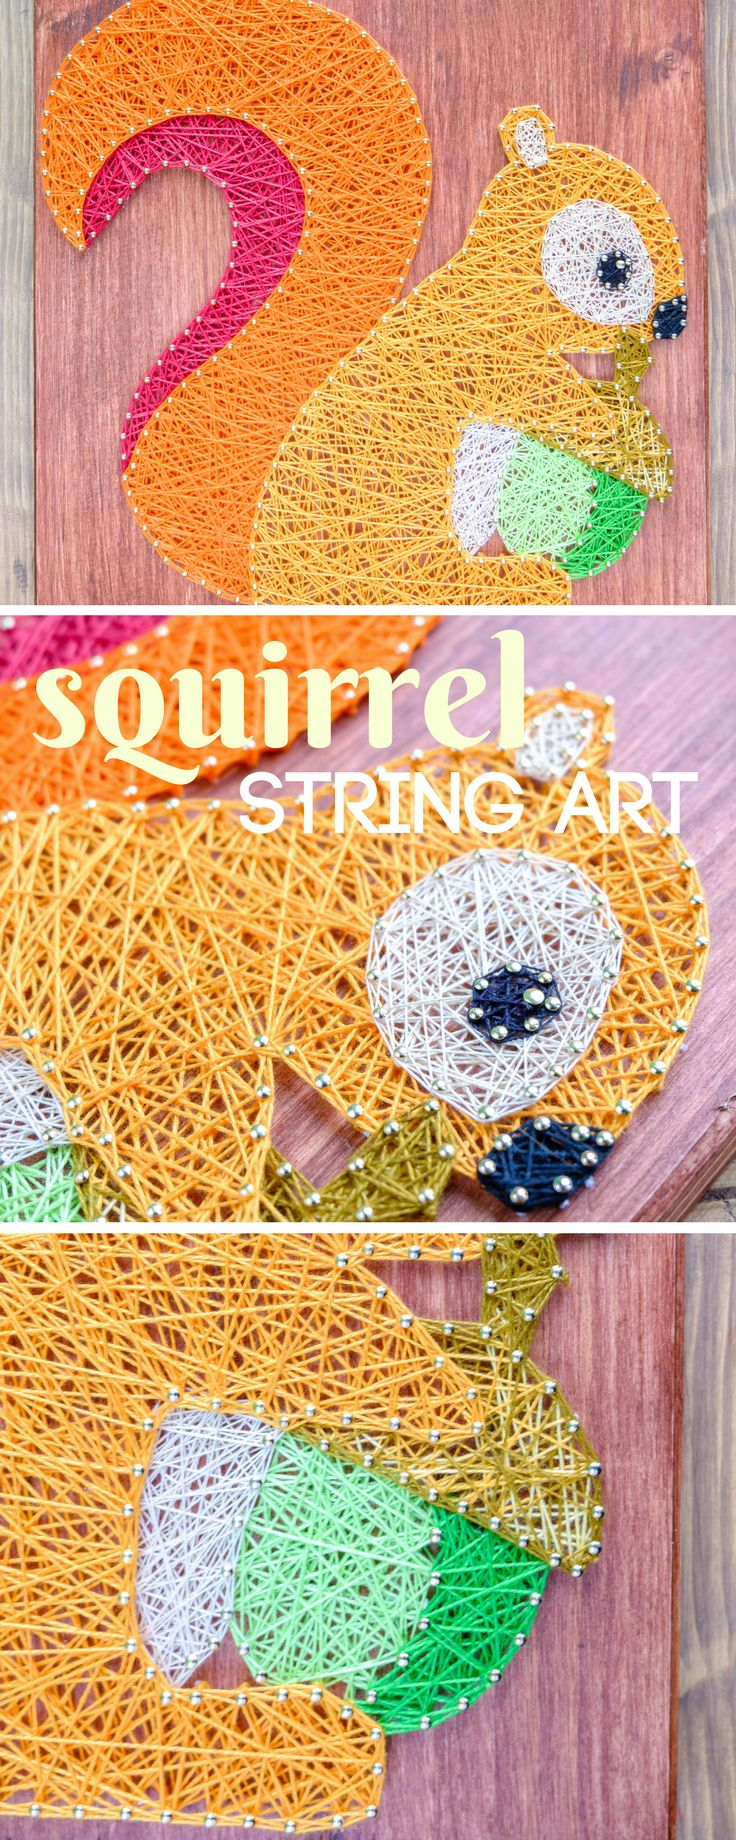 Cute and handmade forest themed nursery or kids room wall decor. Squirrel string art decor for your home.